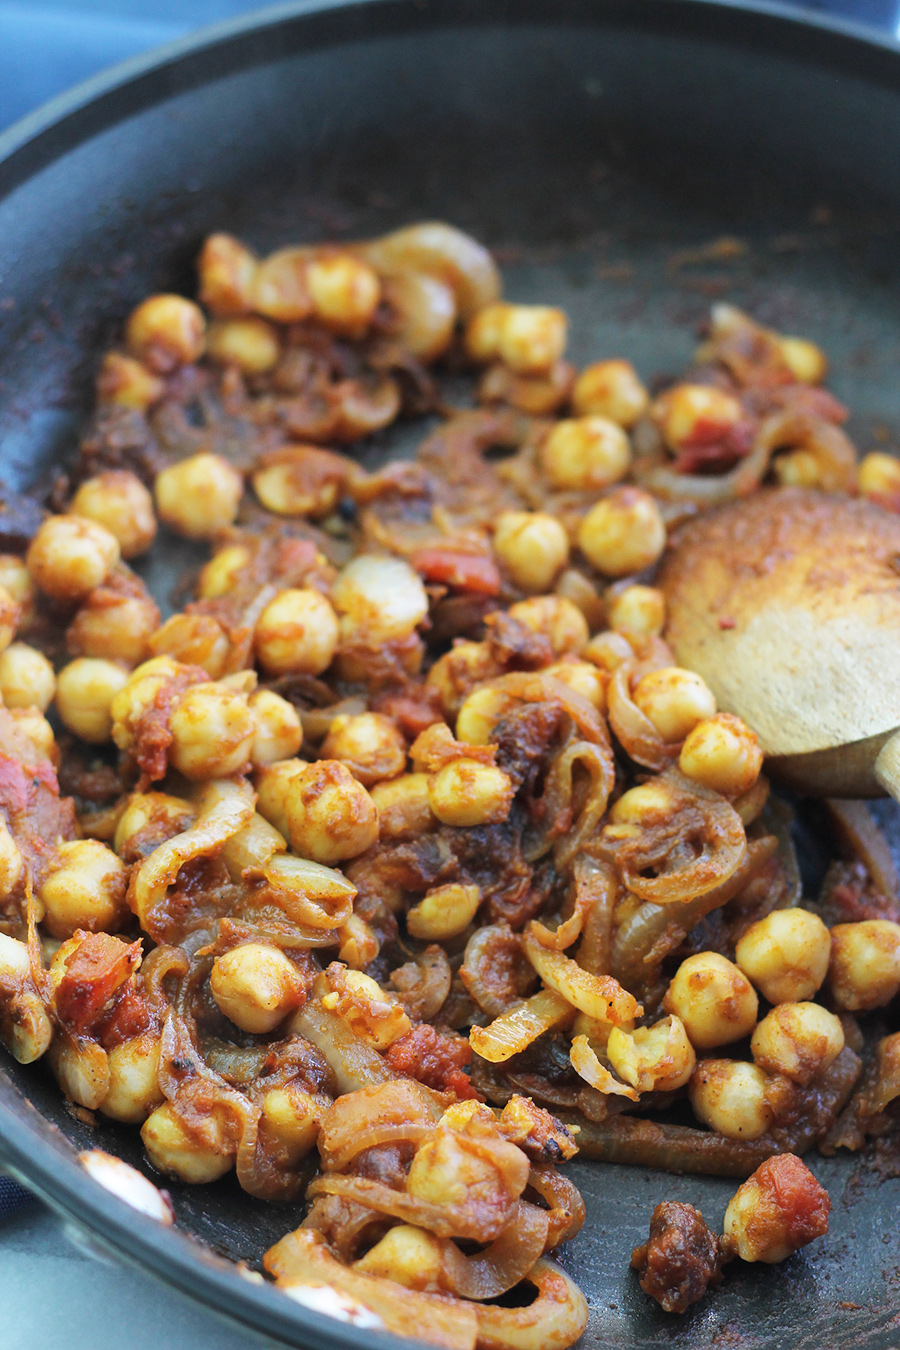 Chickpeas in saute pan, seasoned with Moroccan inspired spice blend.